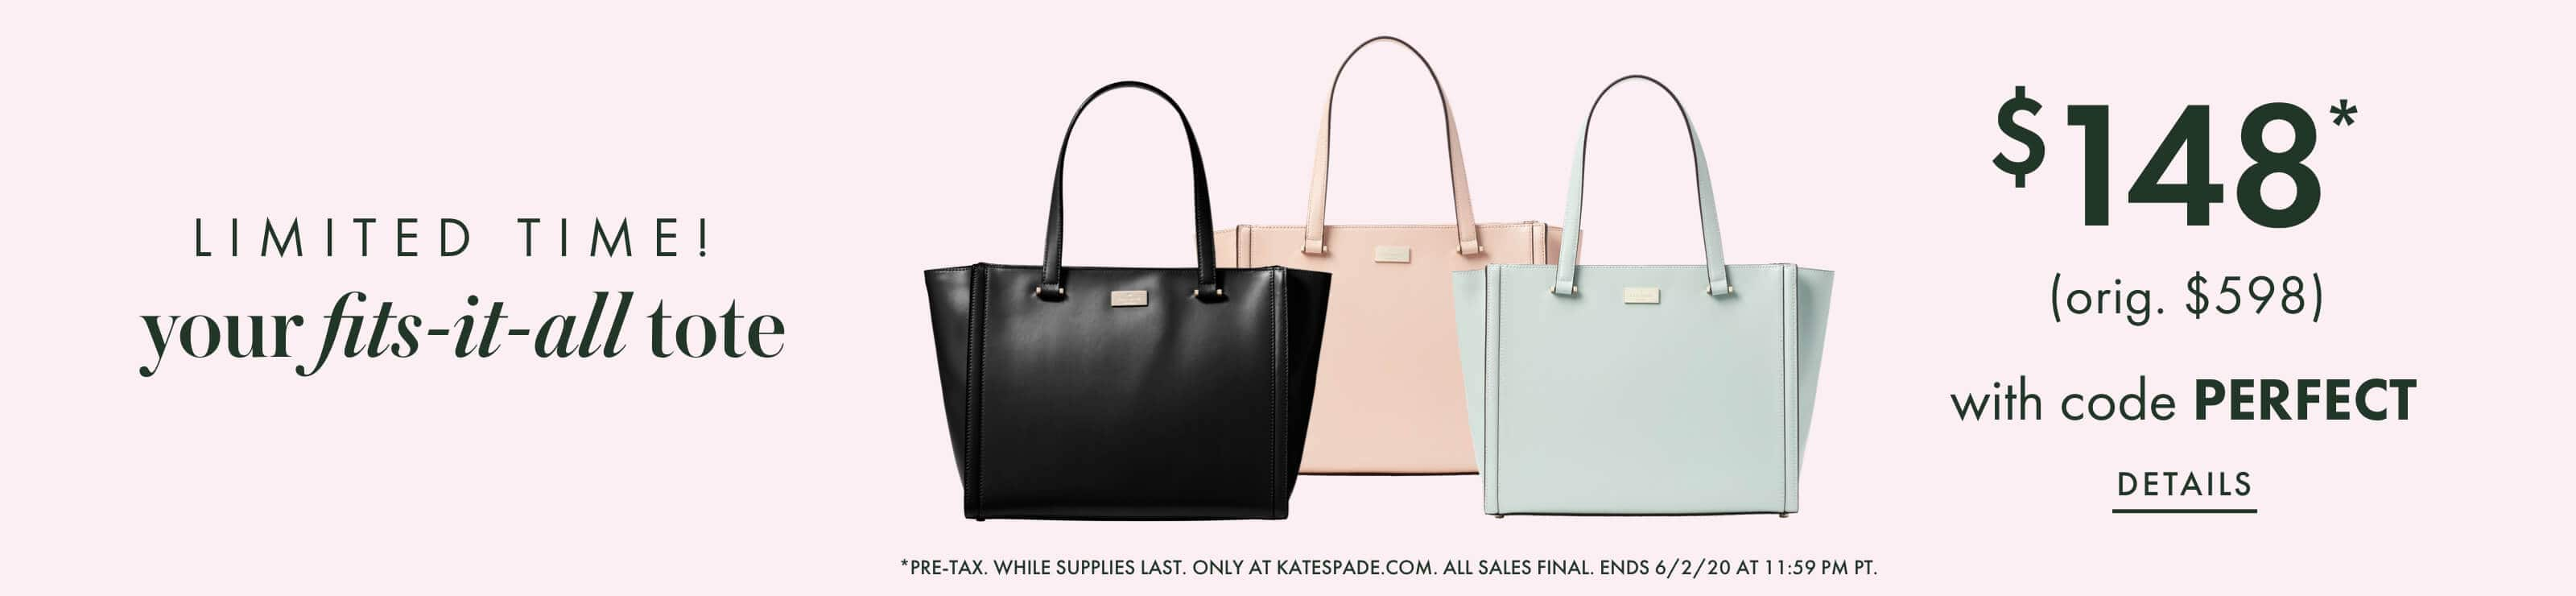 limited time! your fits-it-all tote $148* (orig. $598) with code PERFECT. details. *pre-tax. while supplies last. only at katespade.com. all sales final. ends 6/2/20 at 11:59 pm pt.